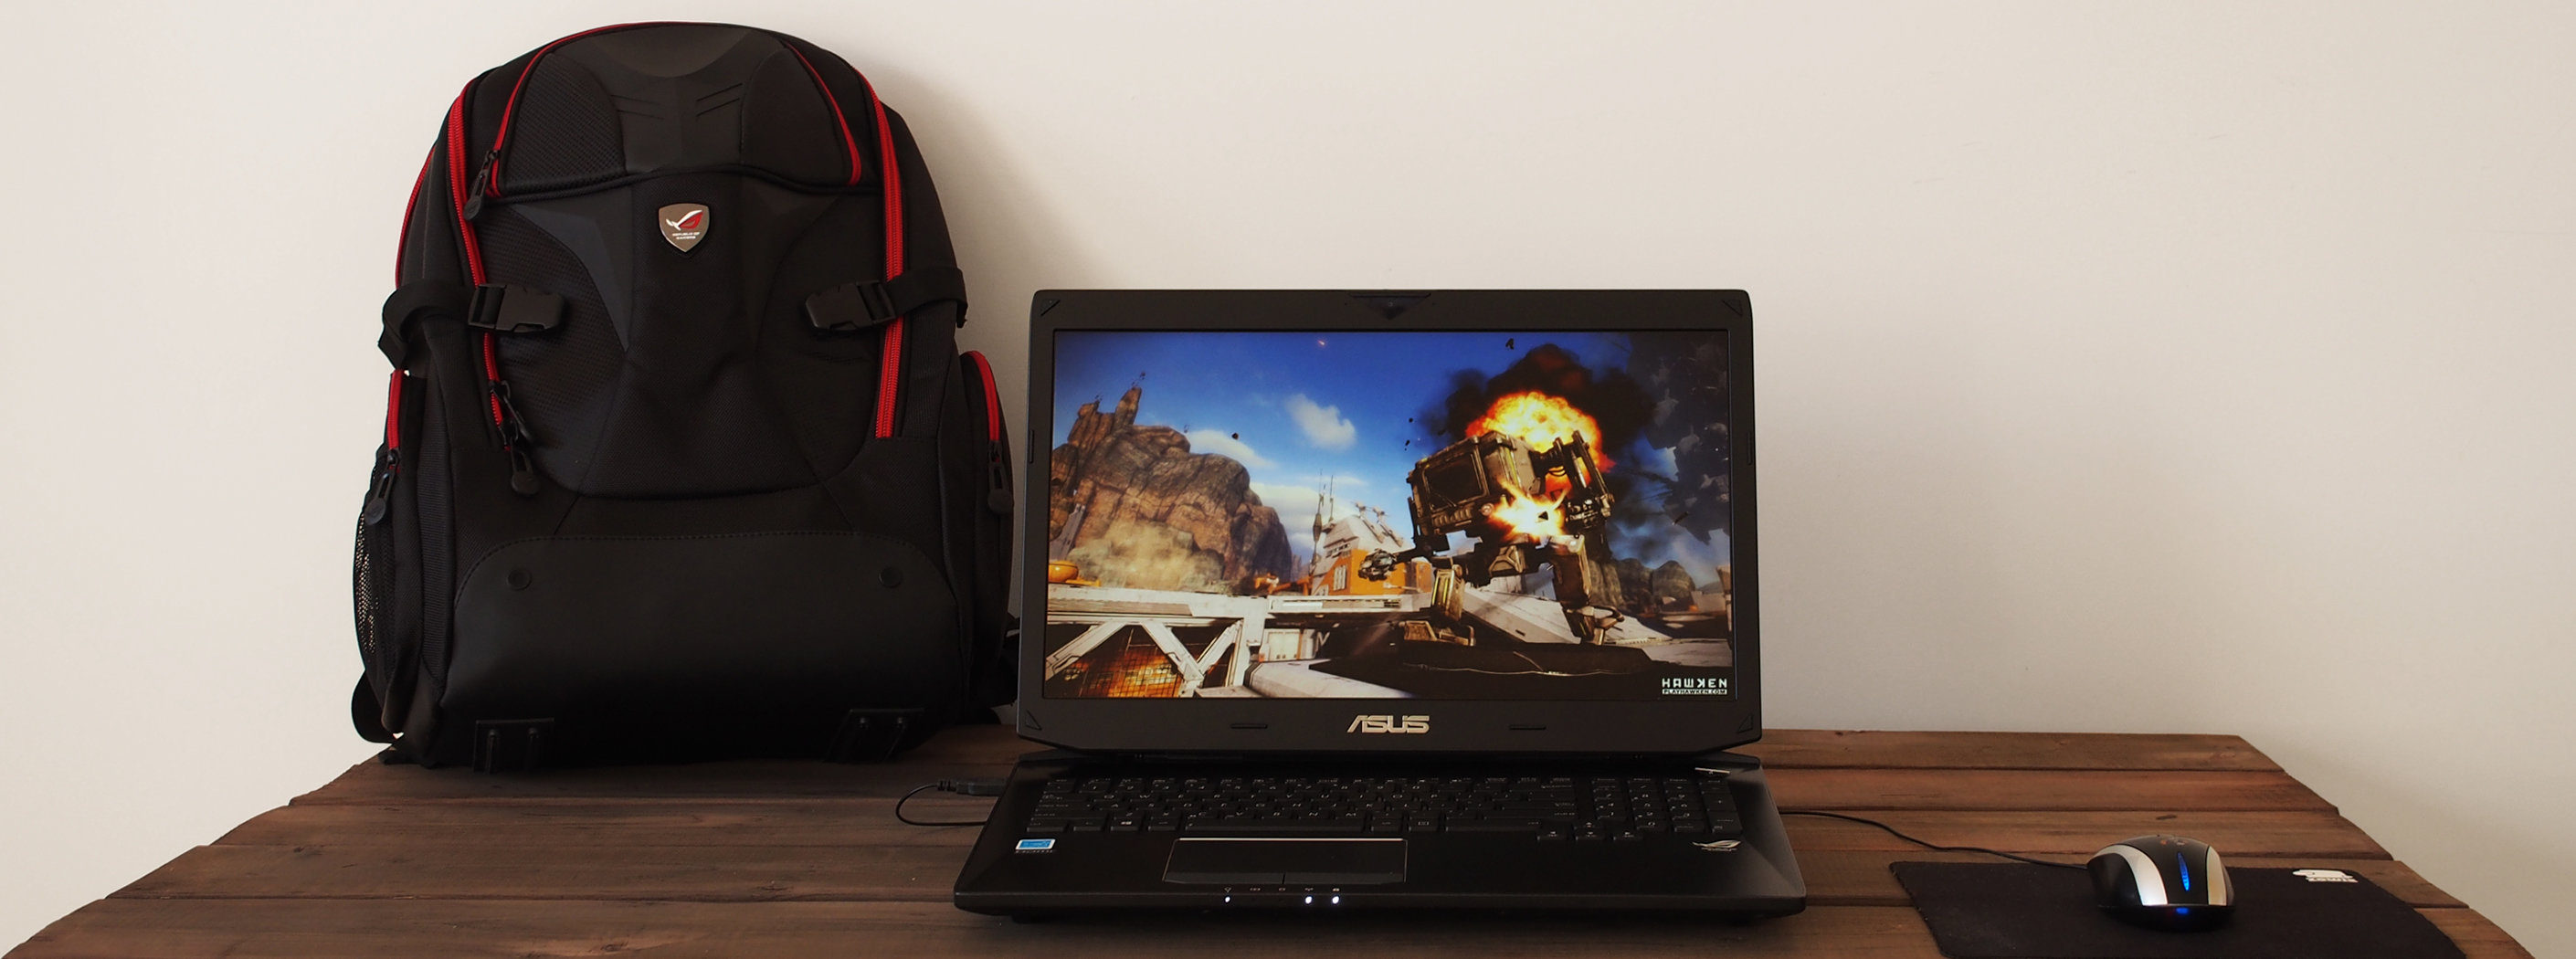 The Asus ROG G750JZ-XS72 Gaming Laptop